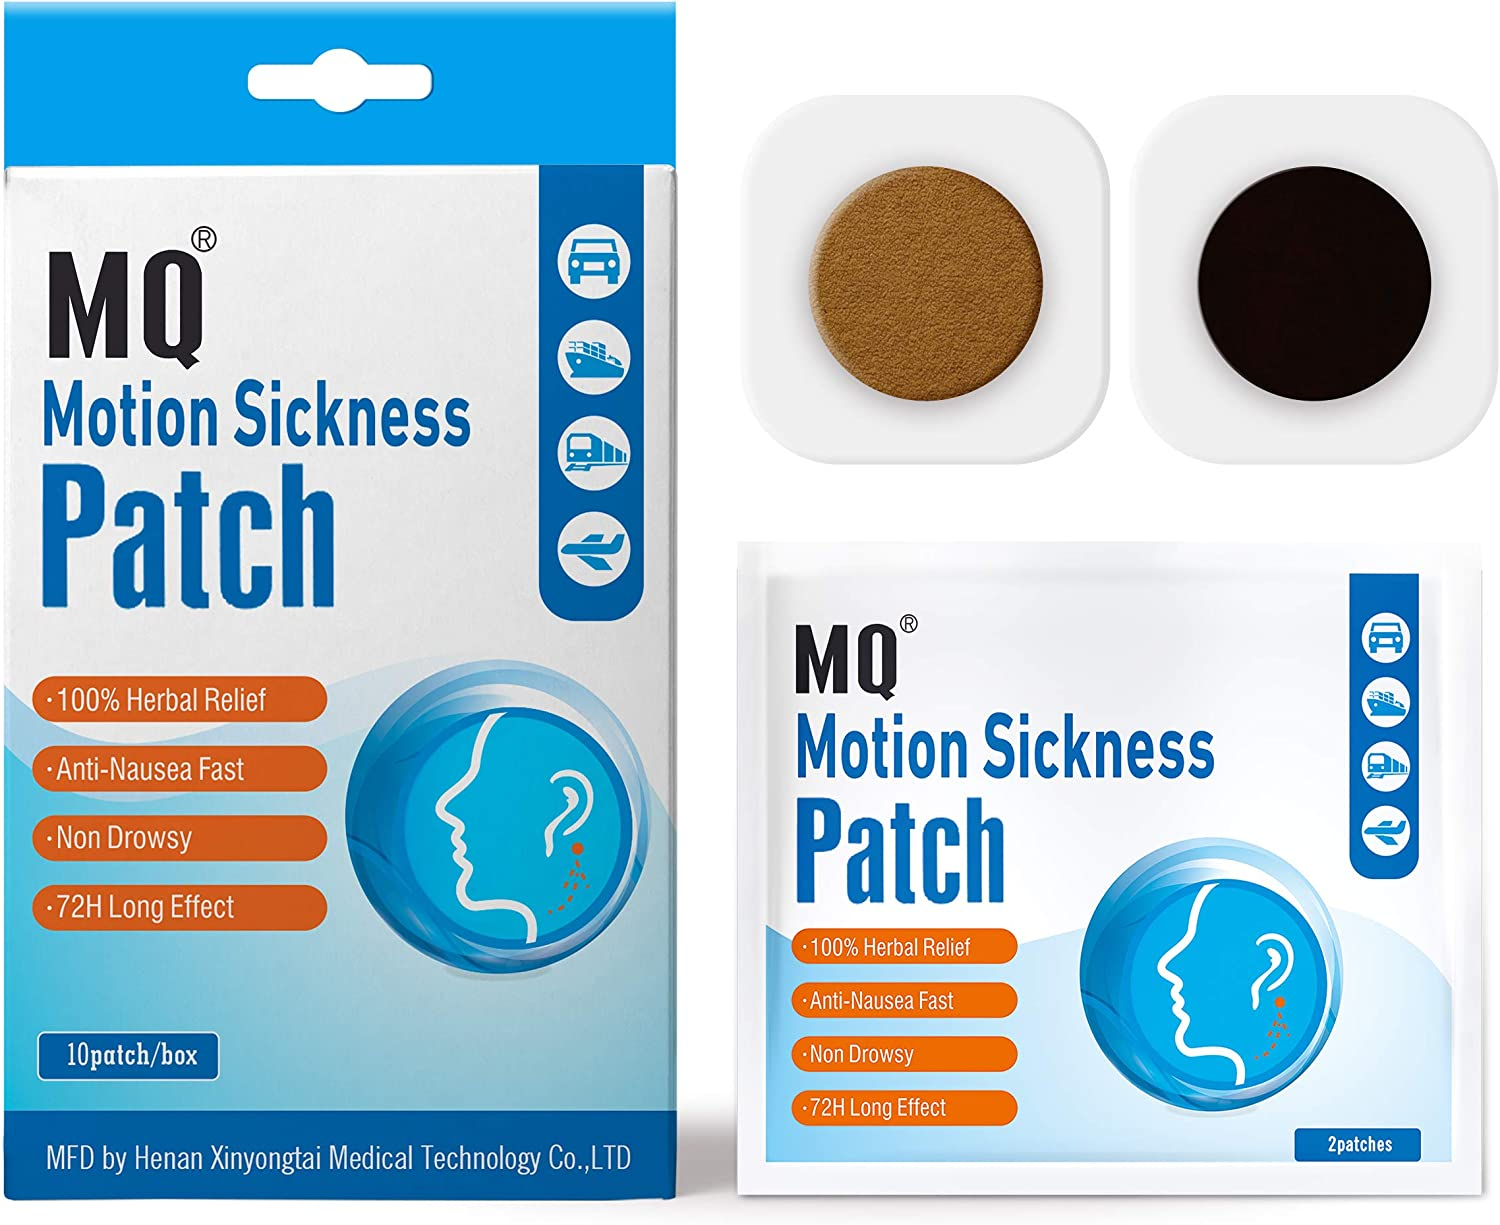 MQ Motion Sickness Patch,10 Count/Box: Amazon.co.uk: Health & Personal Care